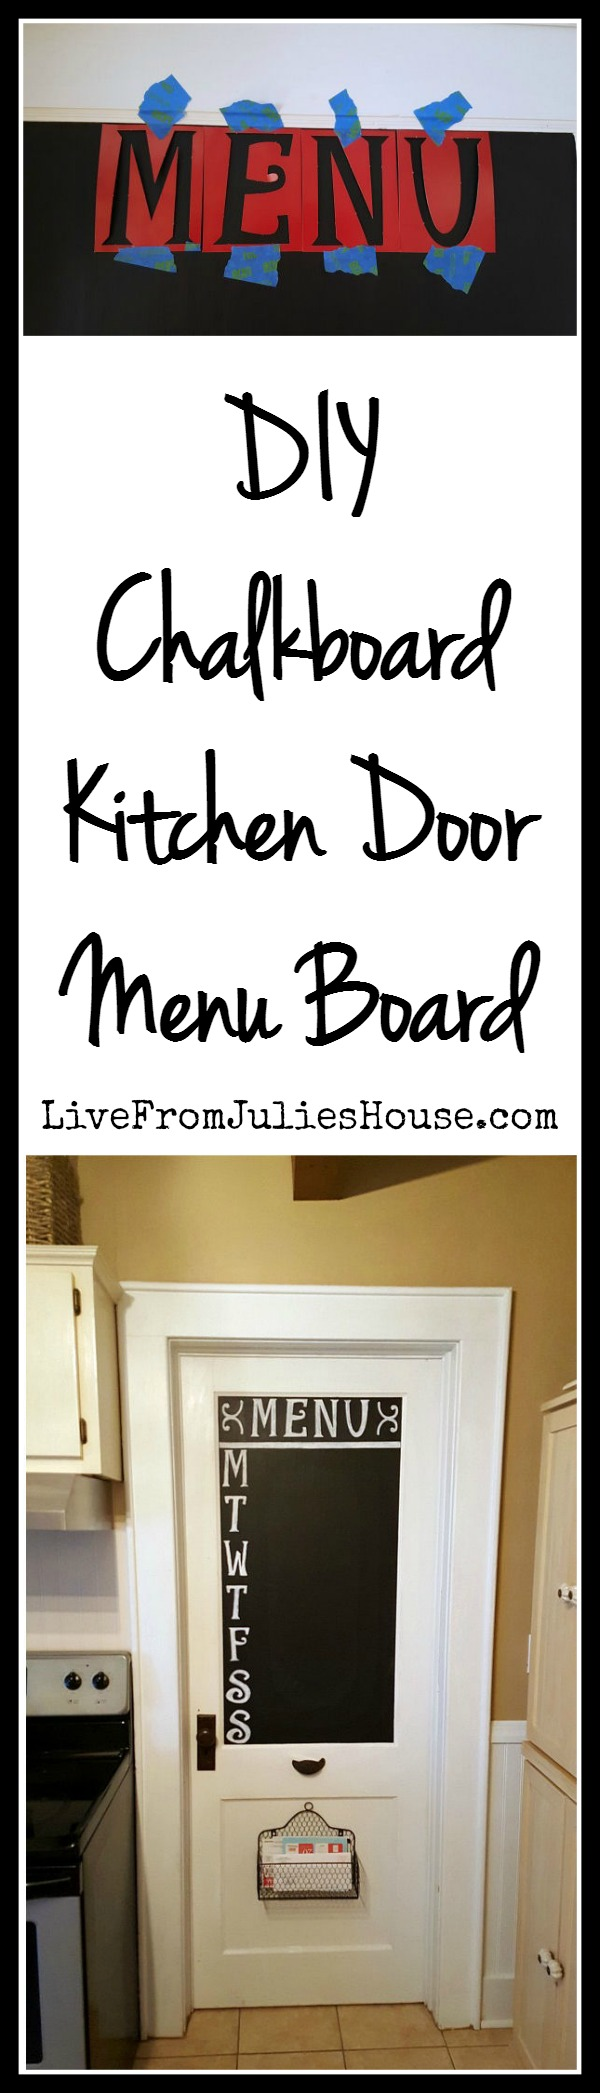 Chalkboard Menu Board - Make a DIY Menu board without taking up precious wall space in the kitchen